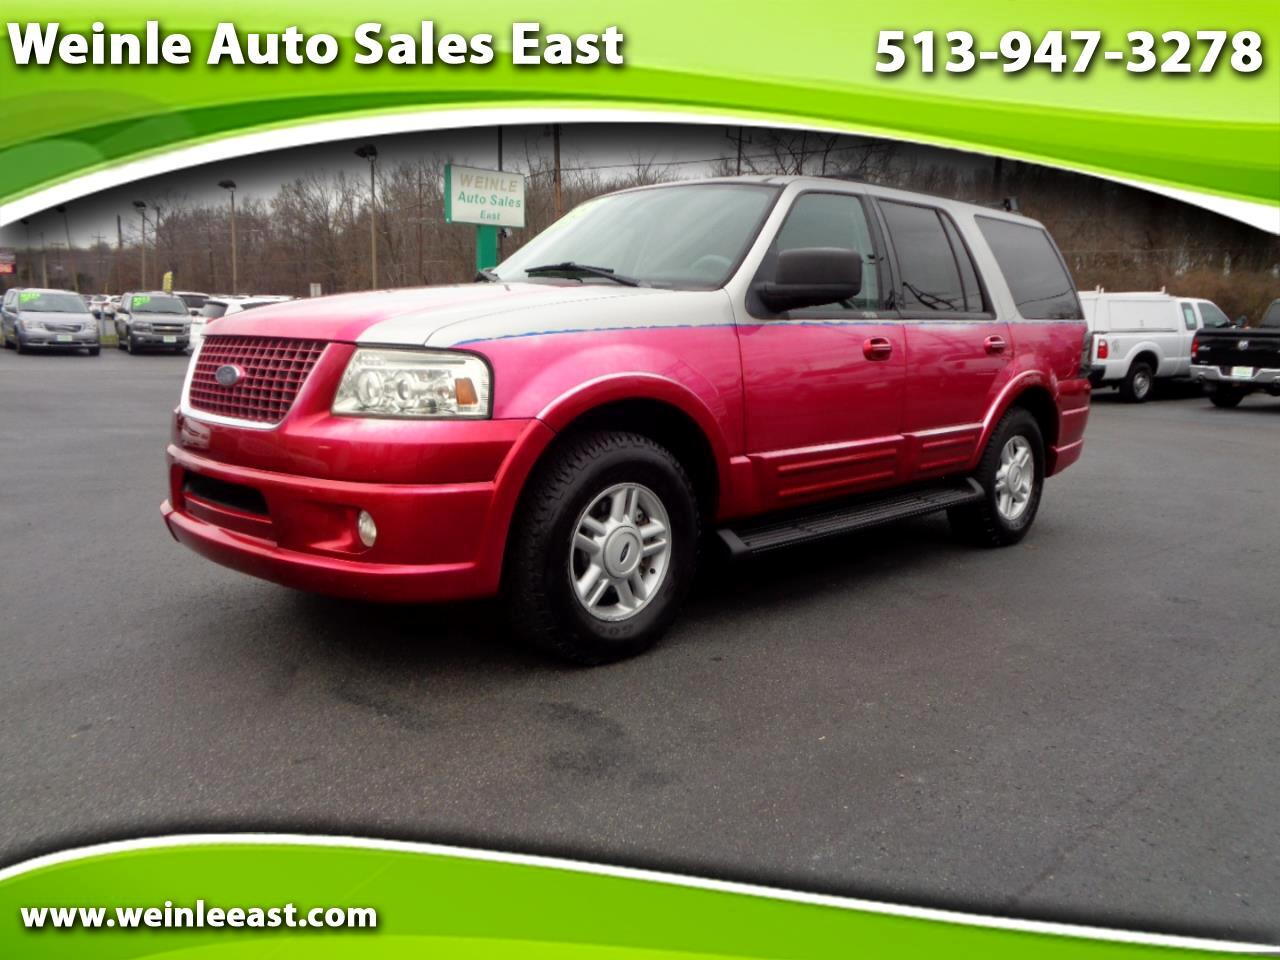 2003 Ford Expedition XLT 4WD CUSTOM PAINT LOW MILES